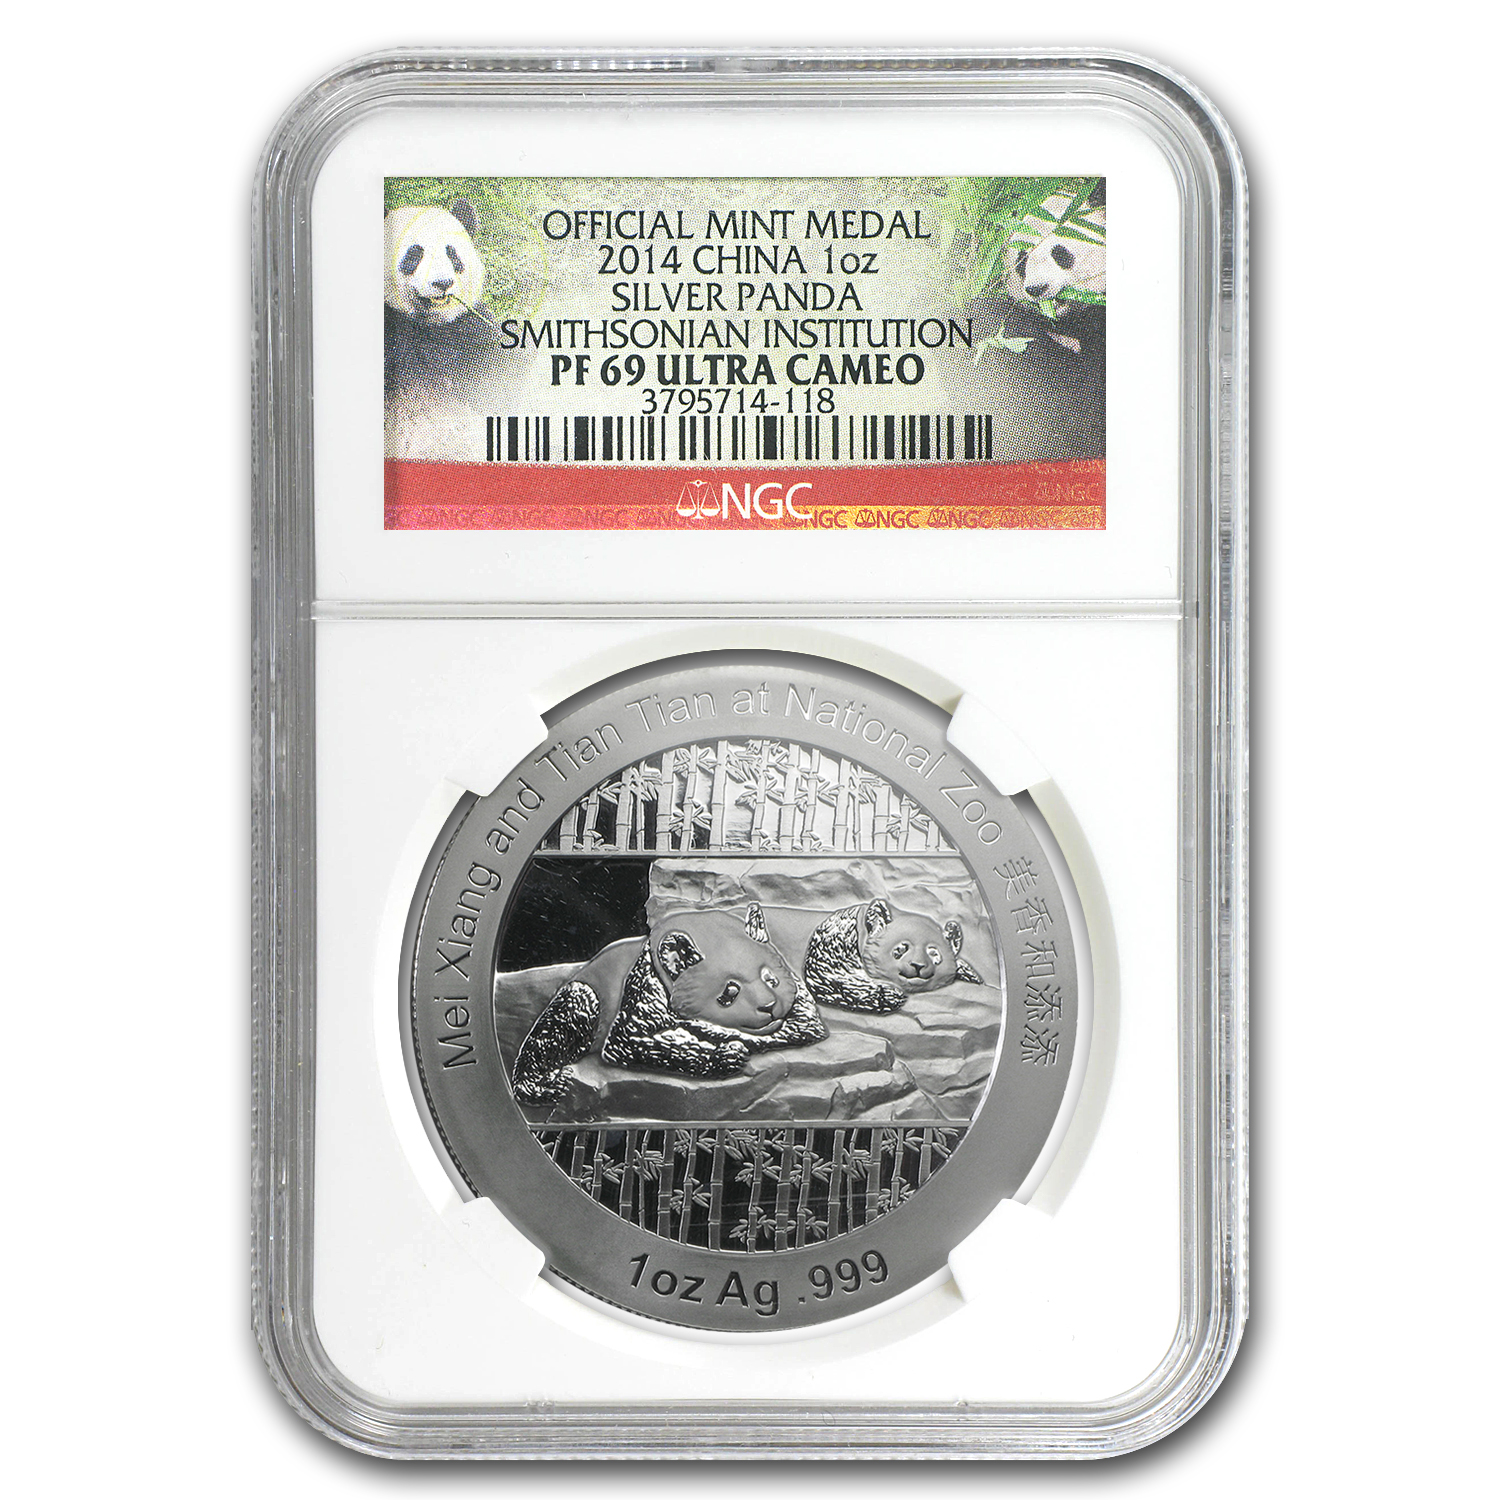 2014 1 oz Silver Panda Smithsonian Institution PF-69 NGC (w/COA)